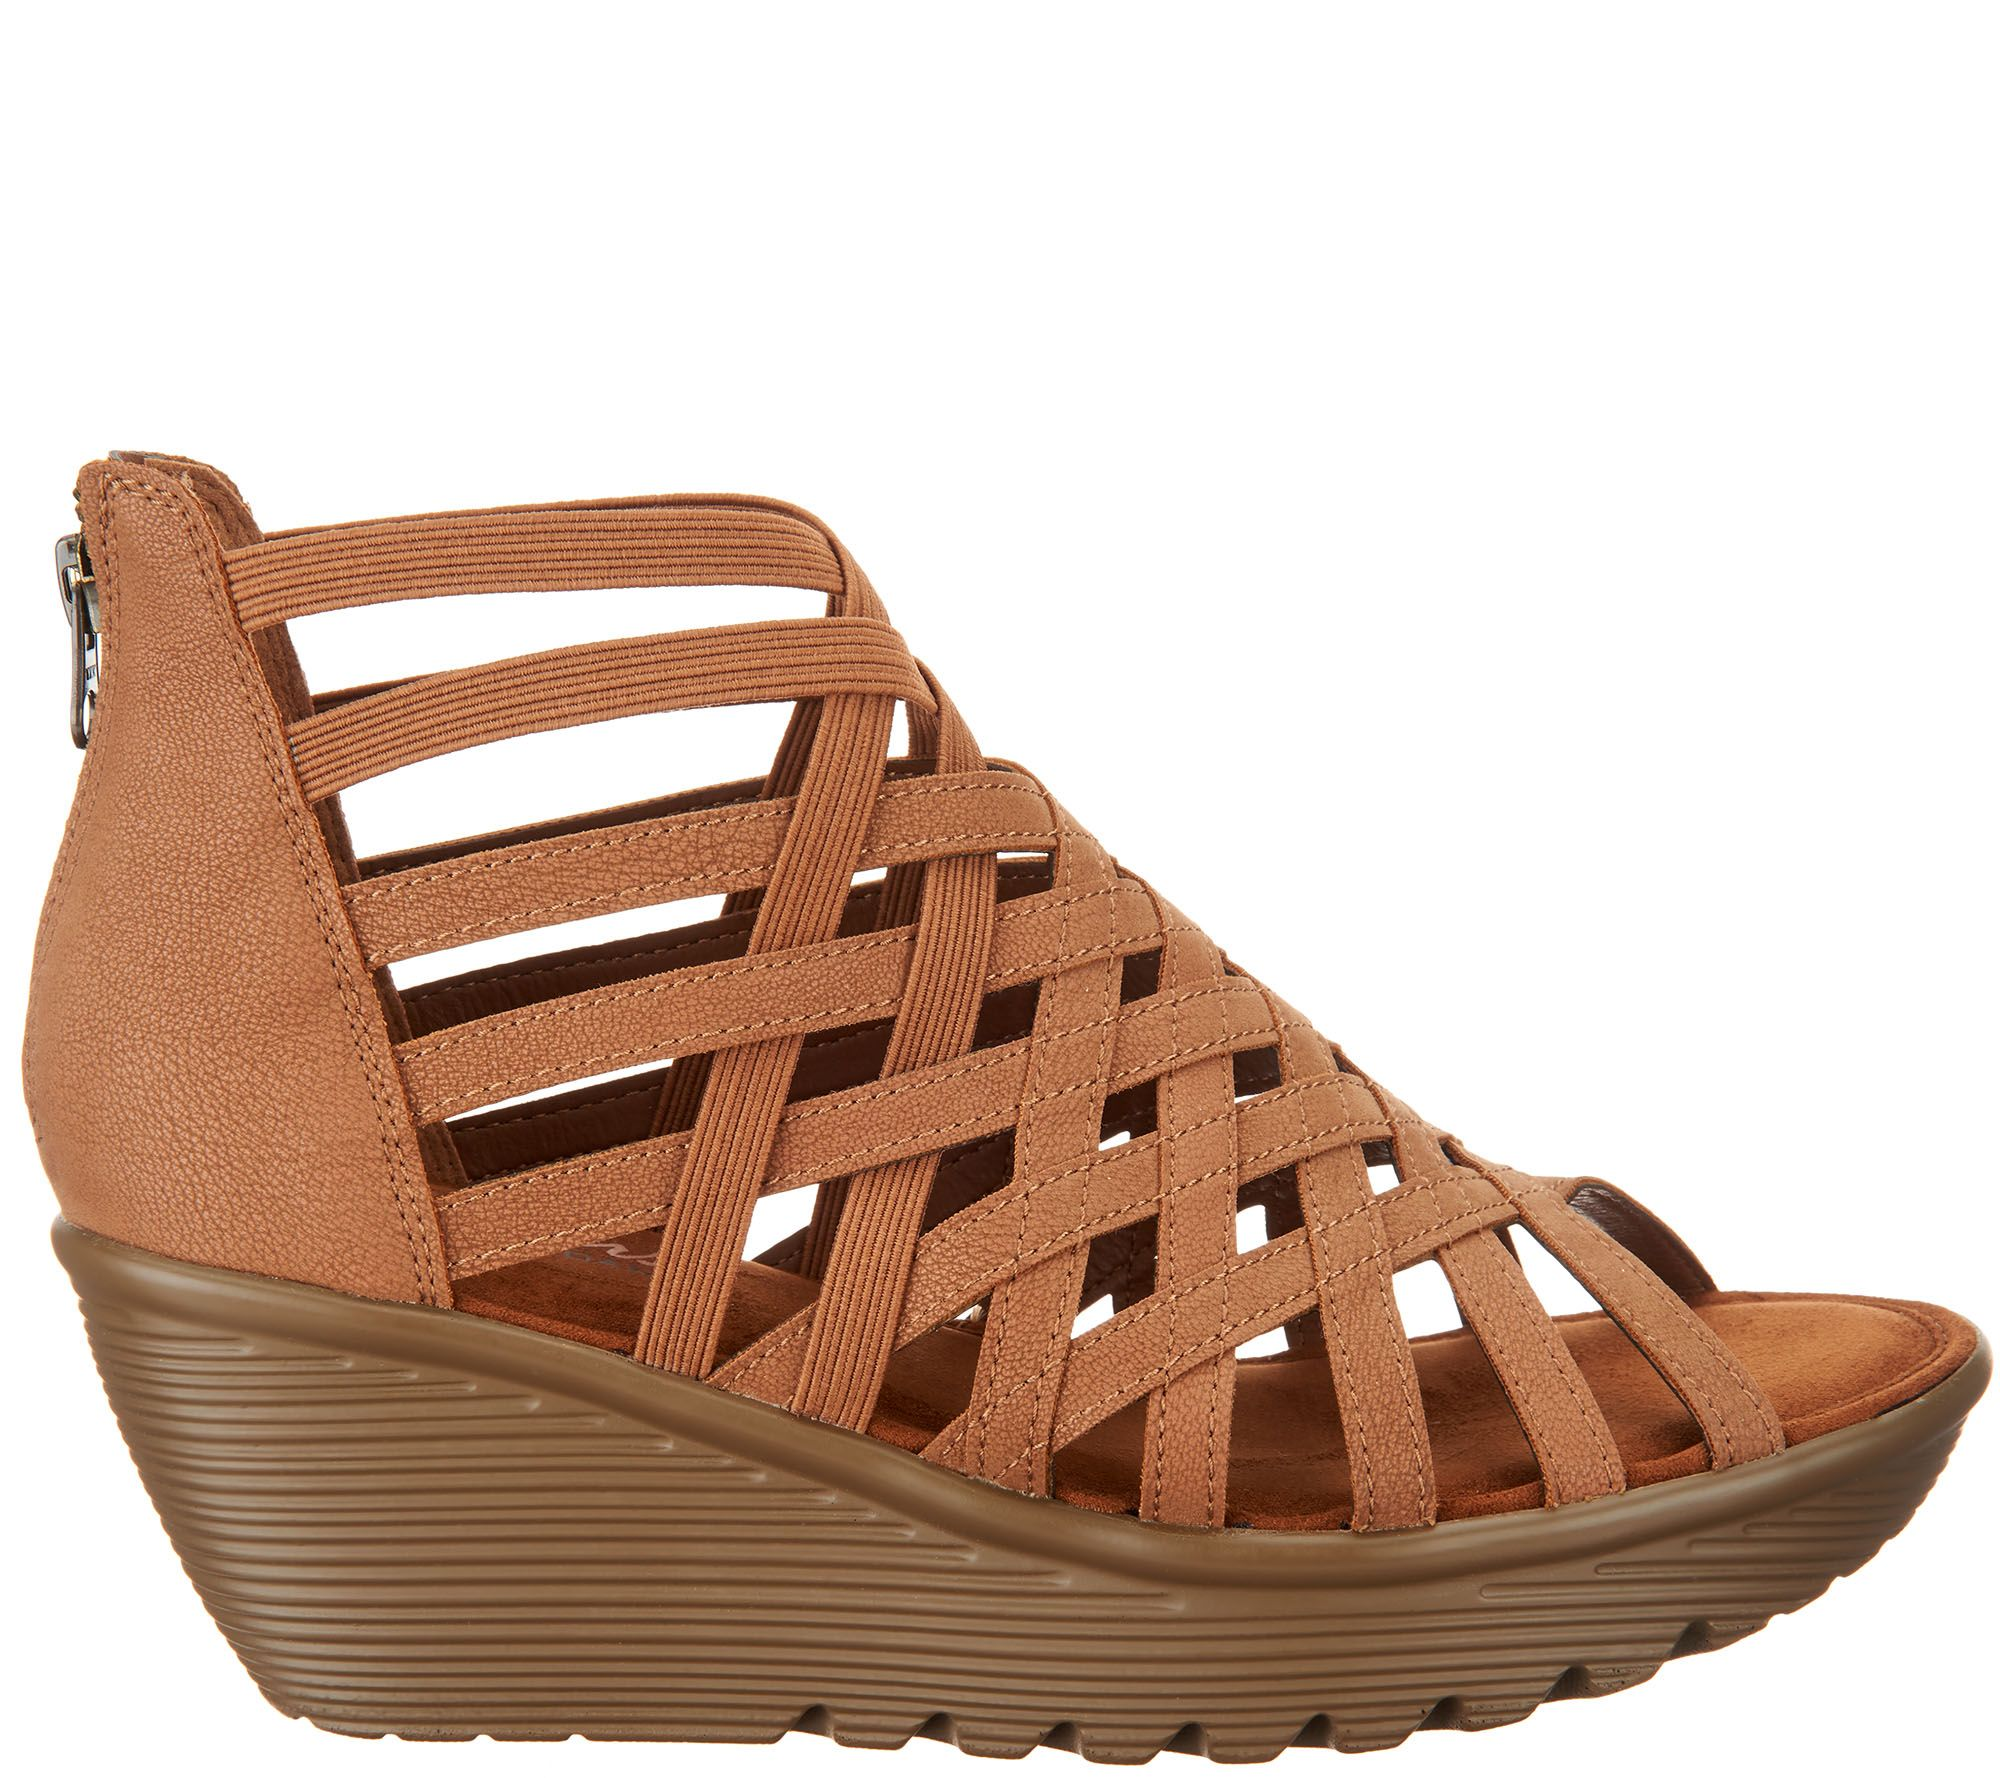 99c156b6e34c Skechers Peep-Toe Caged Wedges - Dream Queen - Page 1 — QVC.com